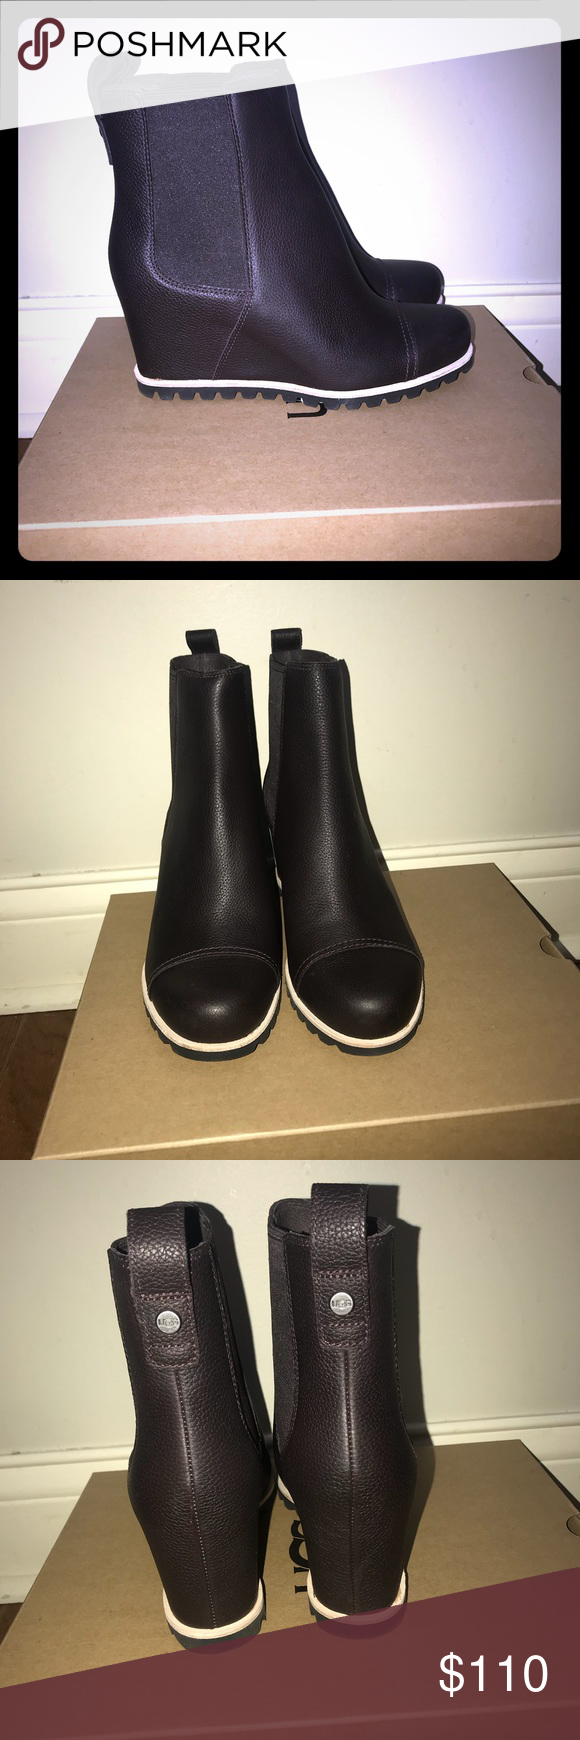 fcd4c983bae2 Ugg Pax Wedge Boot Stout Size 6.5 Ugg Brand Pax style Stout Color (dark  brown) New in box Size 6.5 UGG Shoes Winter   Rain Boots